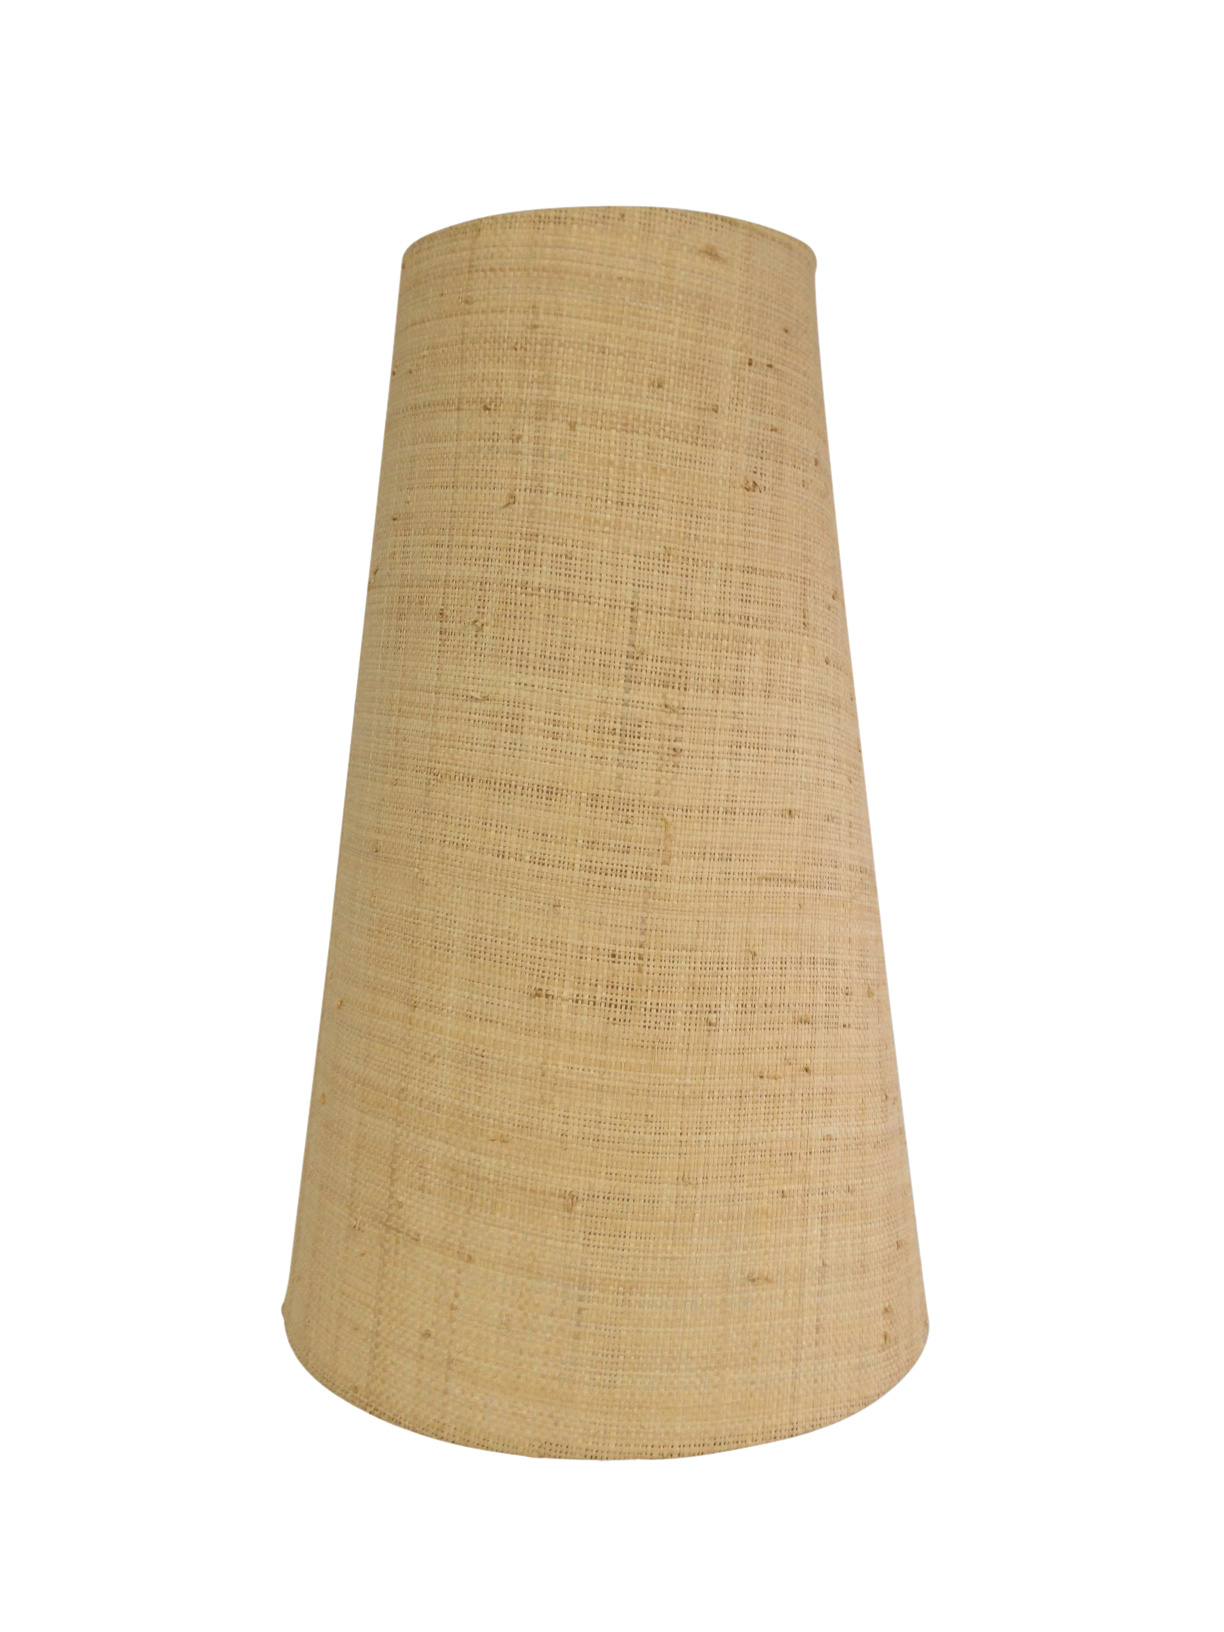 Raffia natural woven lampshade craft enterprises pty ltd raffia natural woven lampshade mozeypictures Images